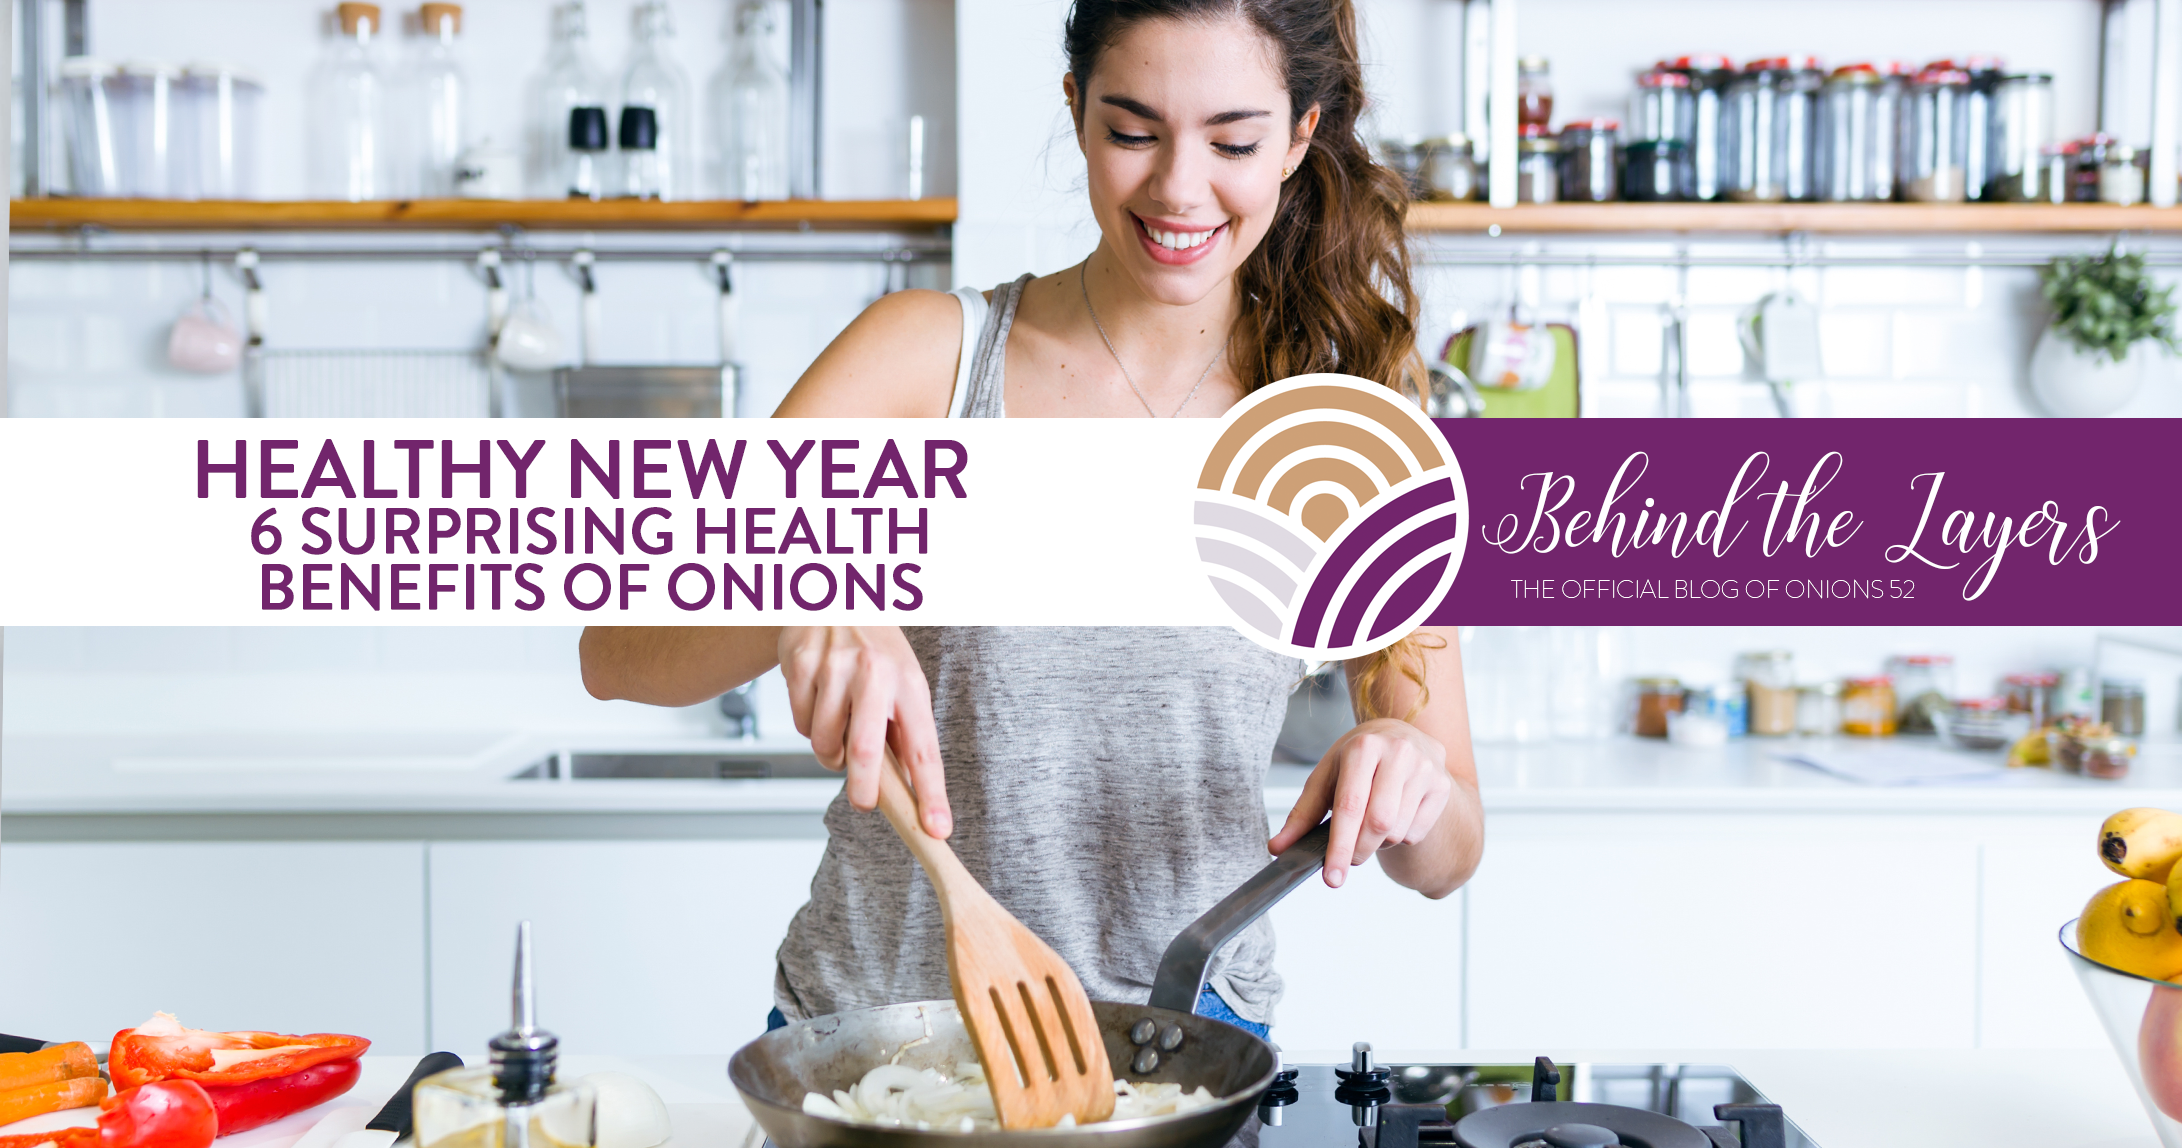 Healthy New Year - 6 Surprising Health Benefits of Onions